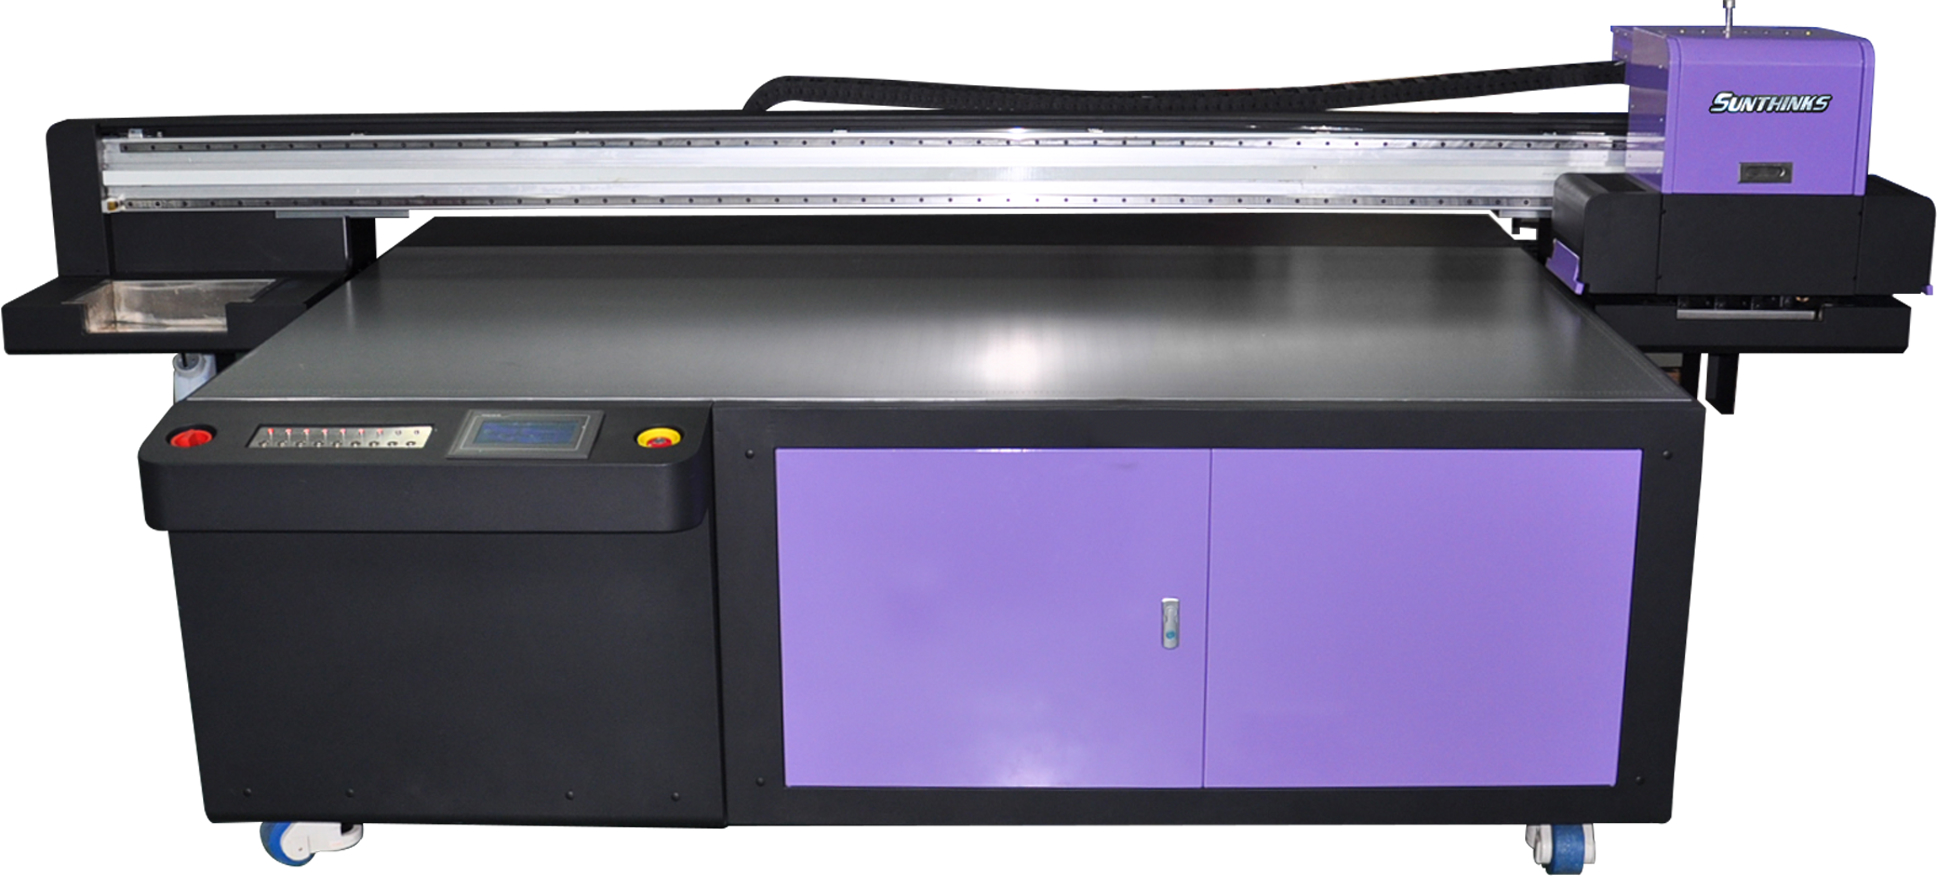 UV Fatbed Printer with Ricoh GEN5 heads 11